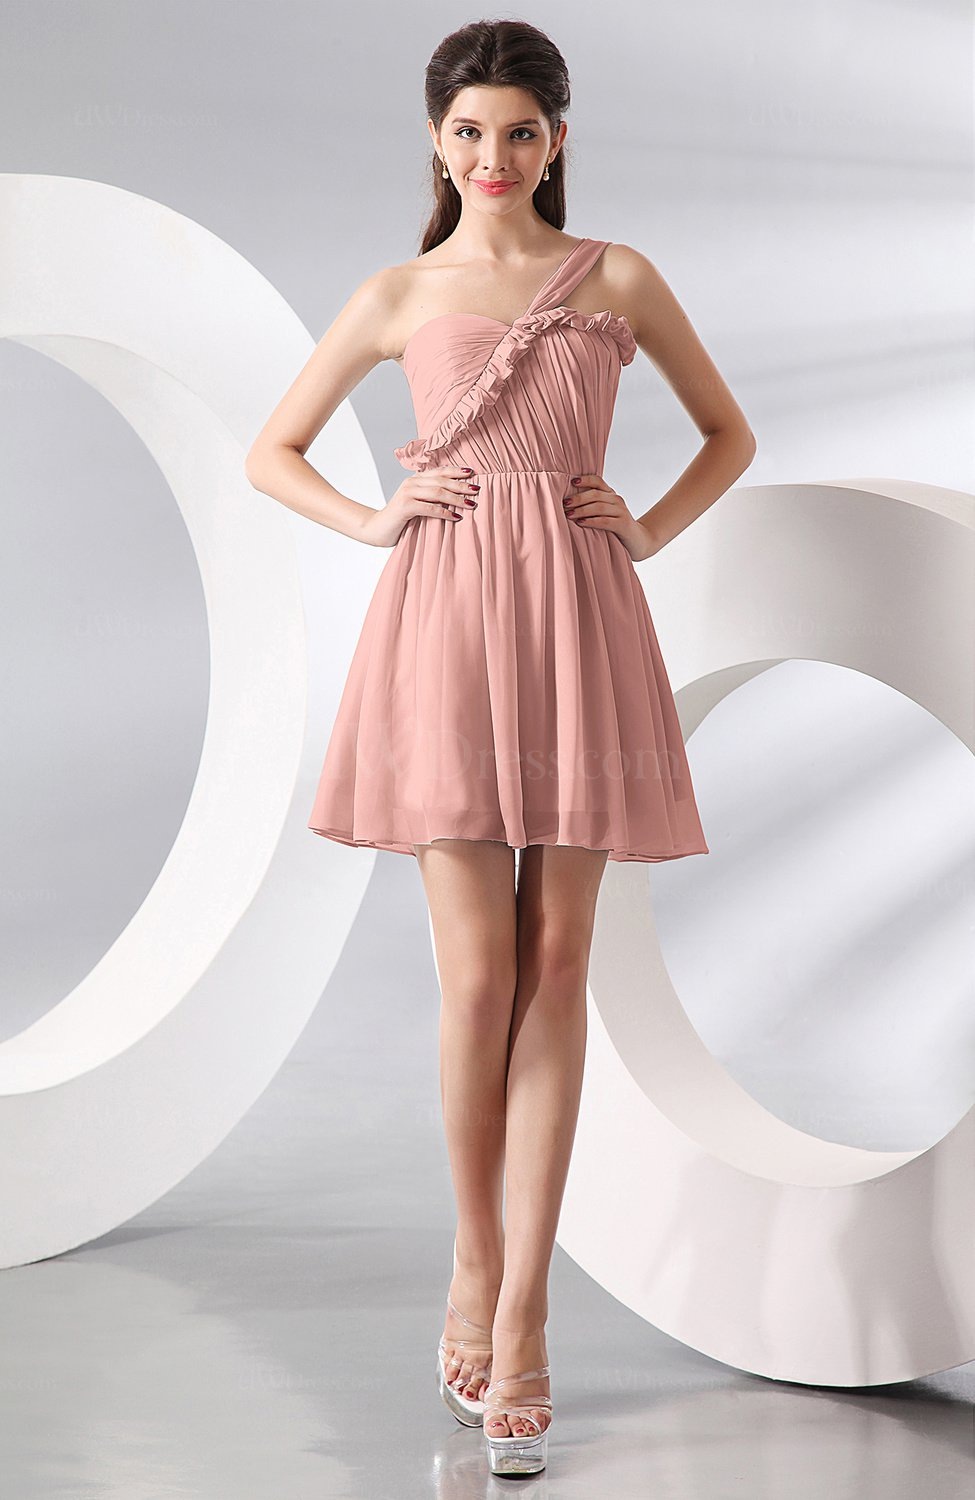 Peach Color Cocktail Dresses - UWDress.com